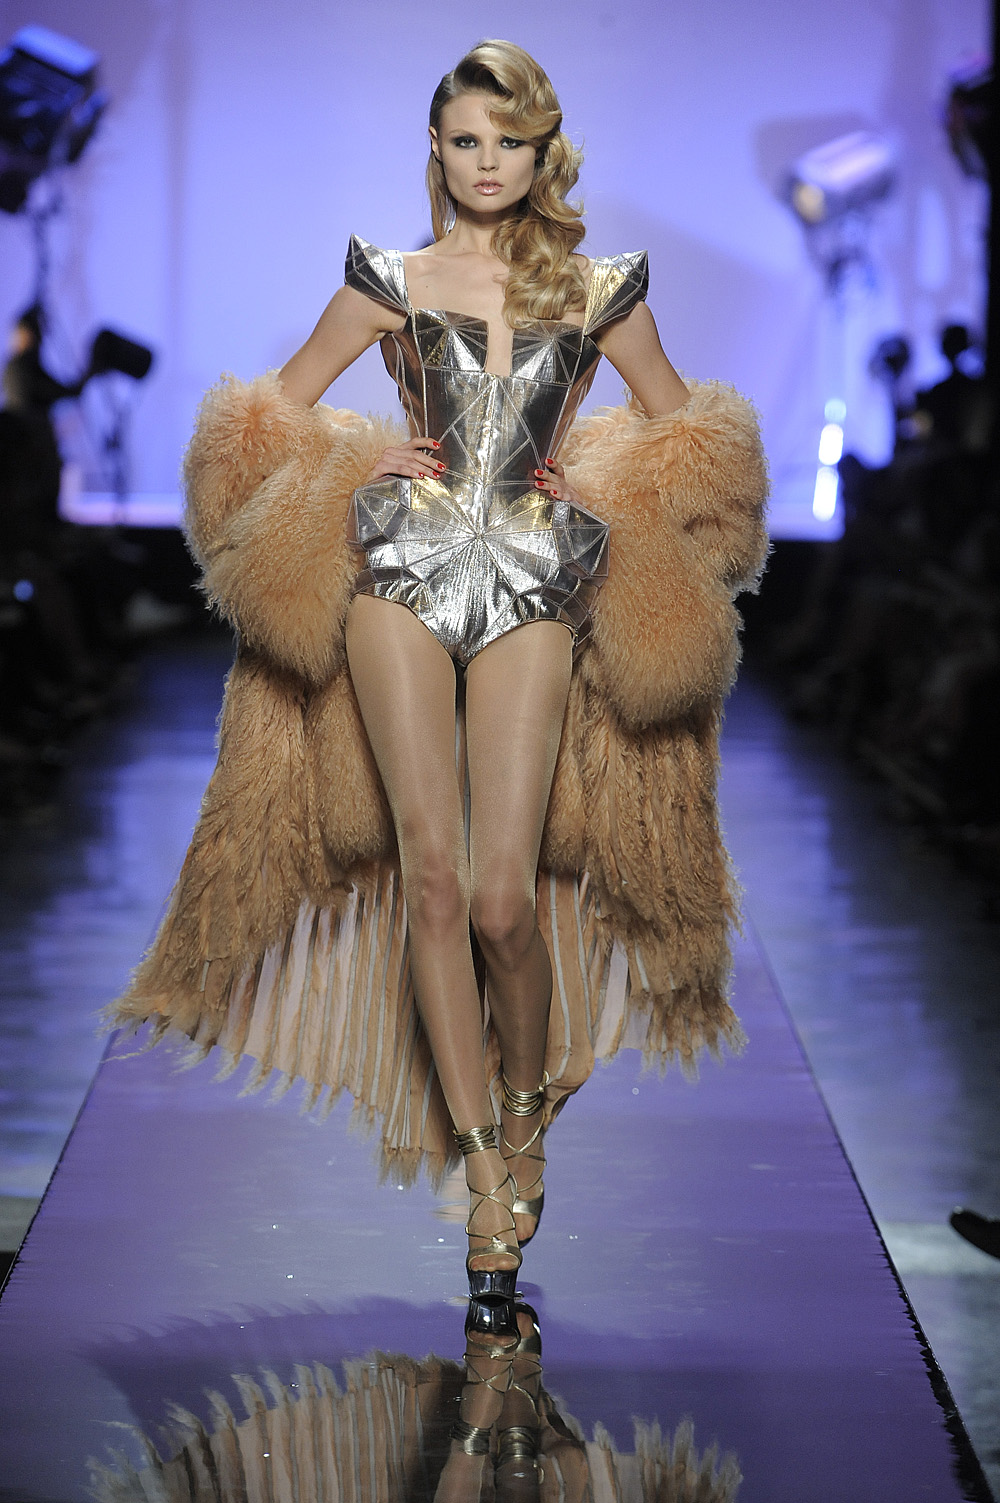 The fashion world of jean paul gaultier has arrived dma for Jean paul gaultier clothing